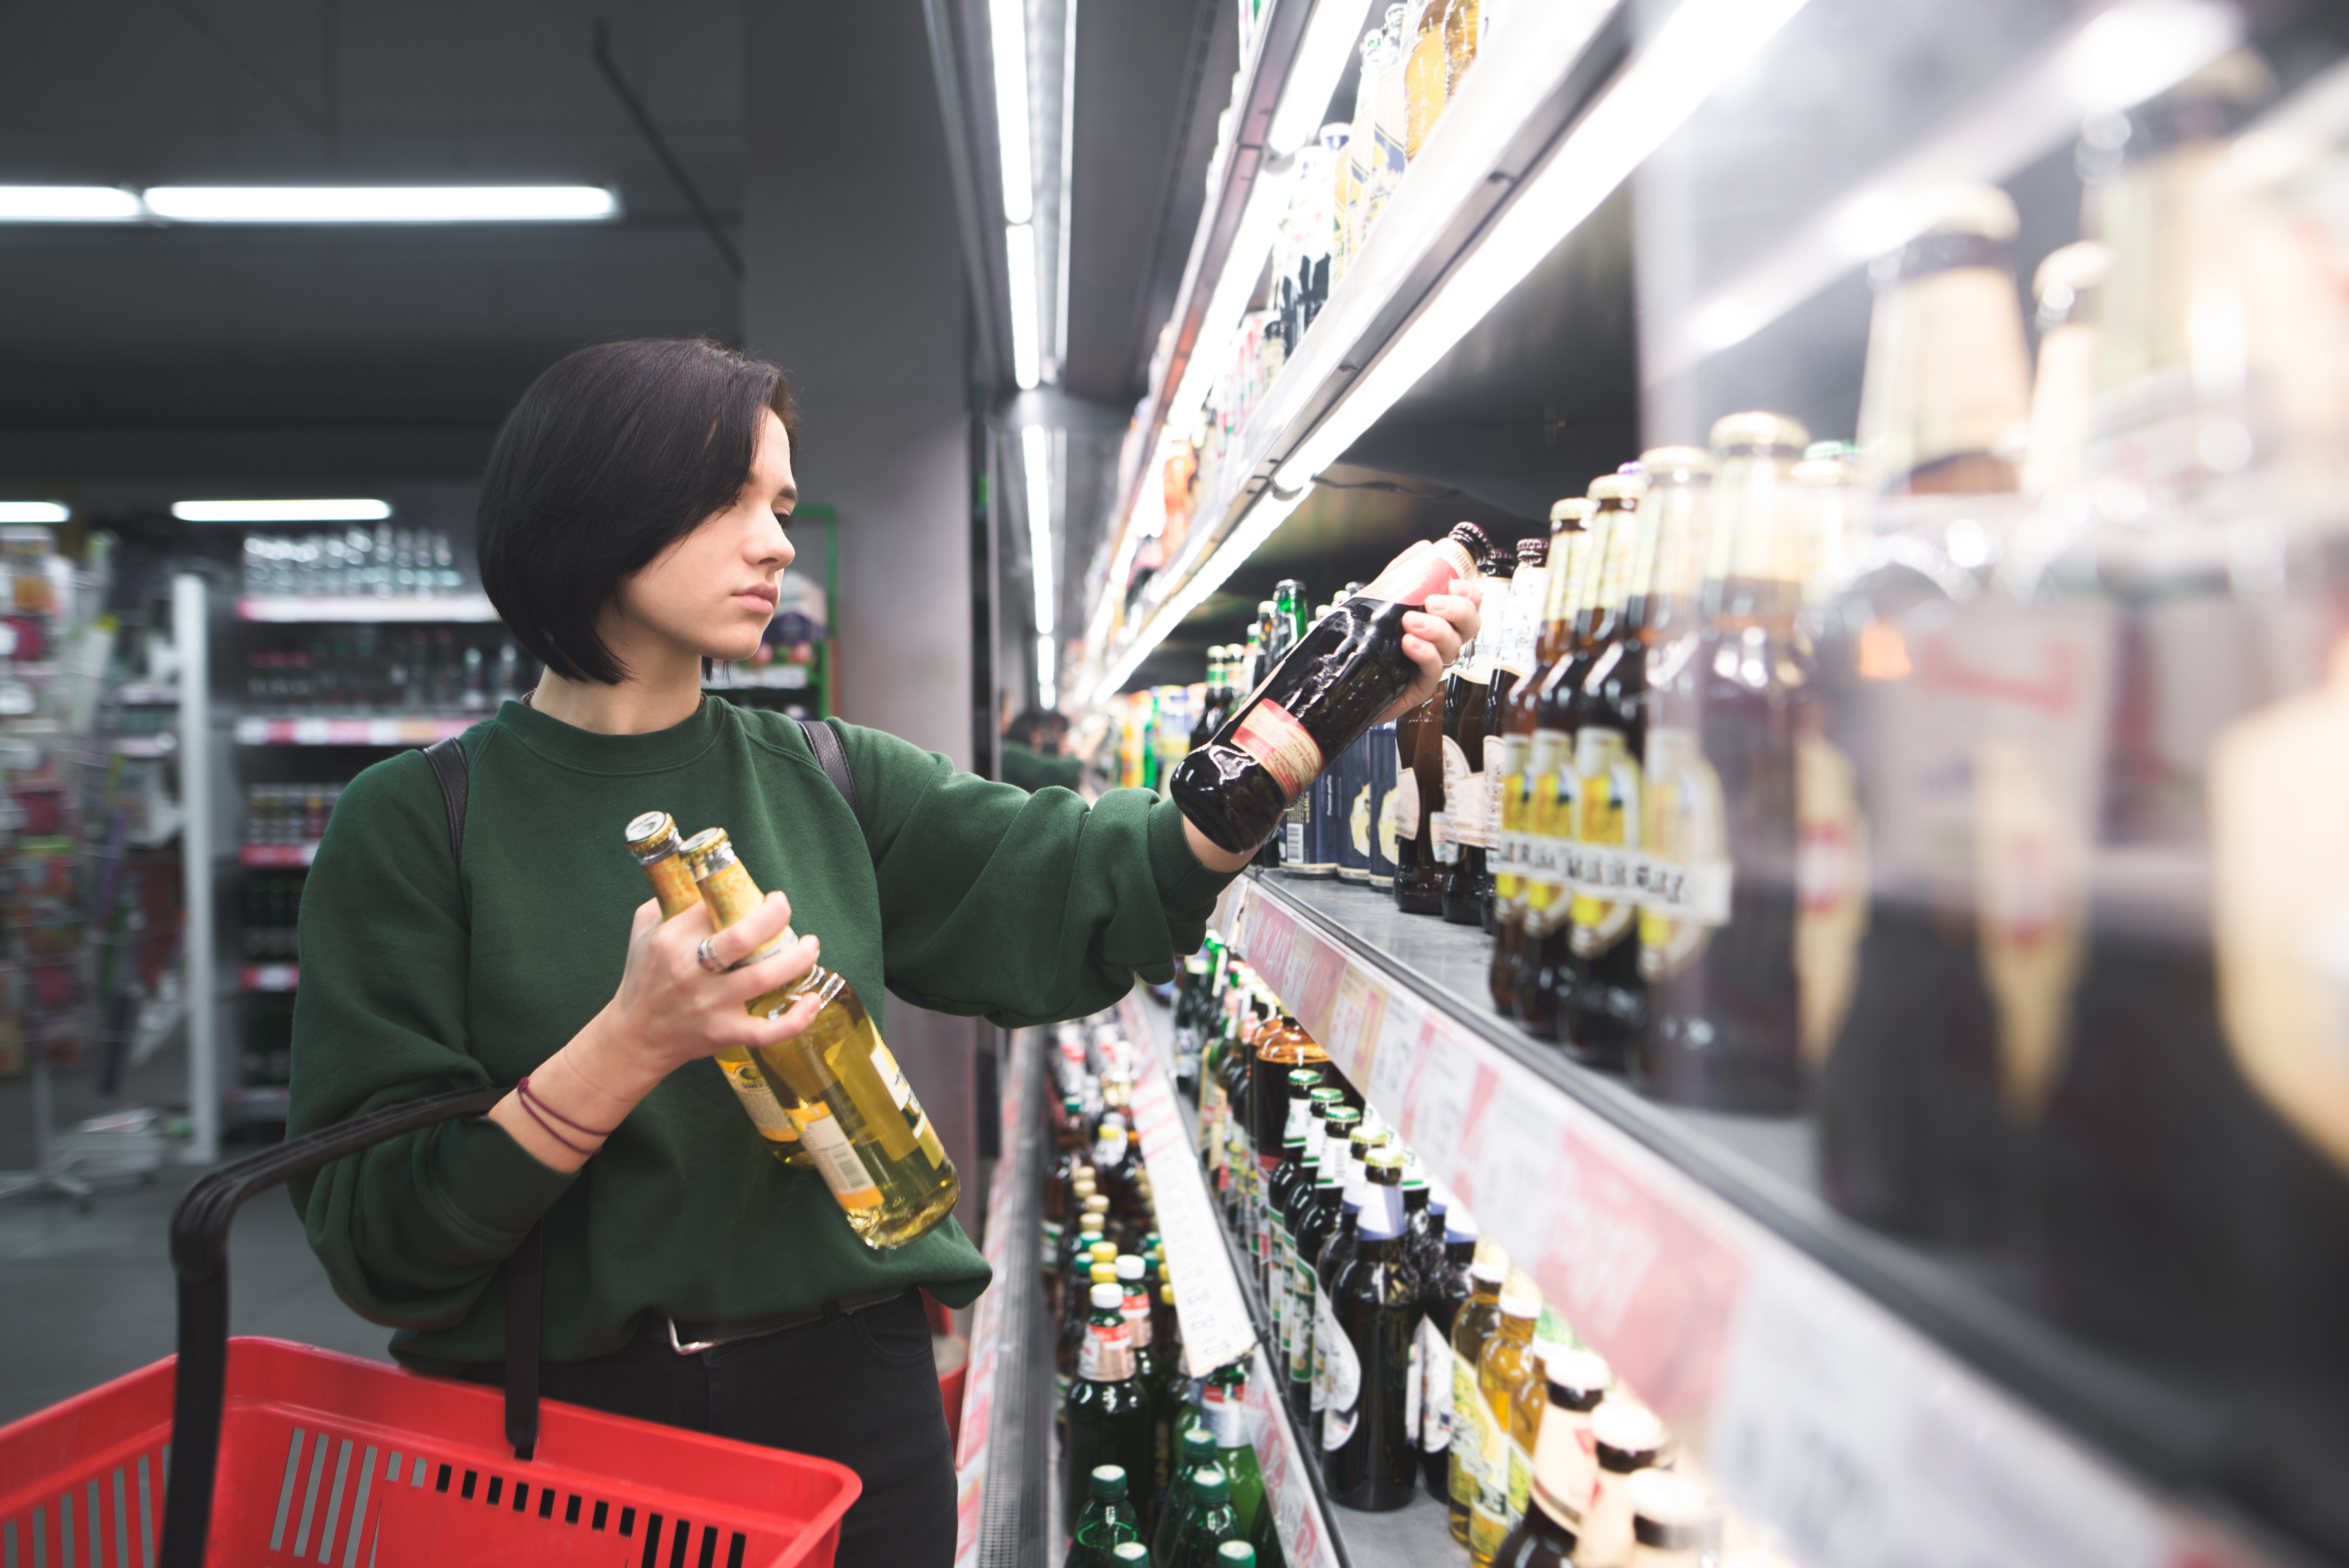 Drinking at the grocery store or retail shops is a trend at big-name retailers like Nordstrom, Whole Foods, and Crate & Barrel